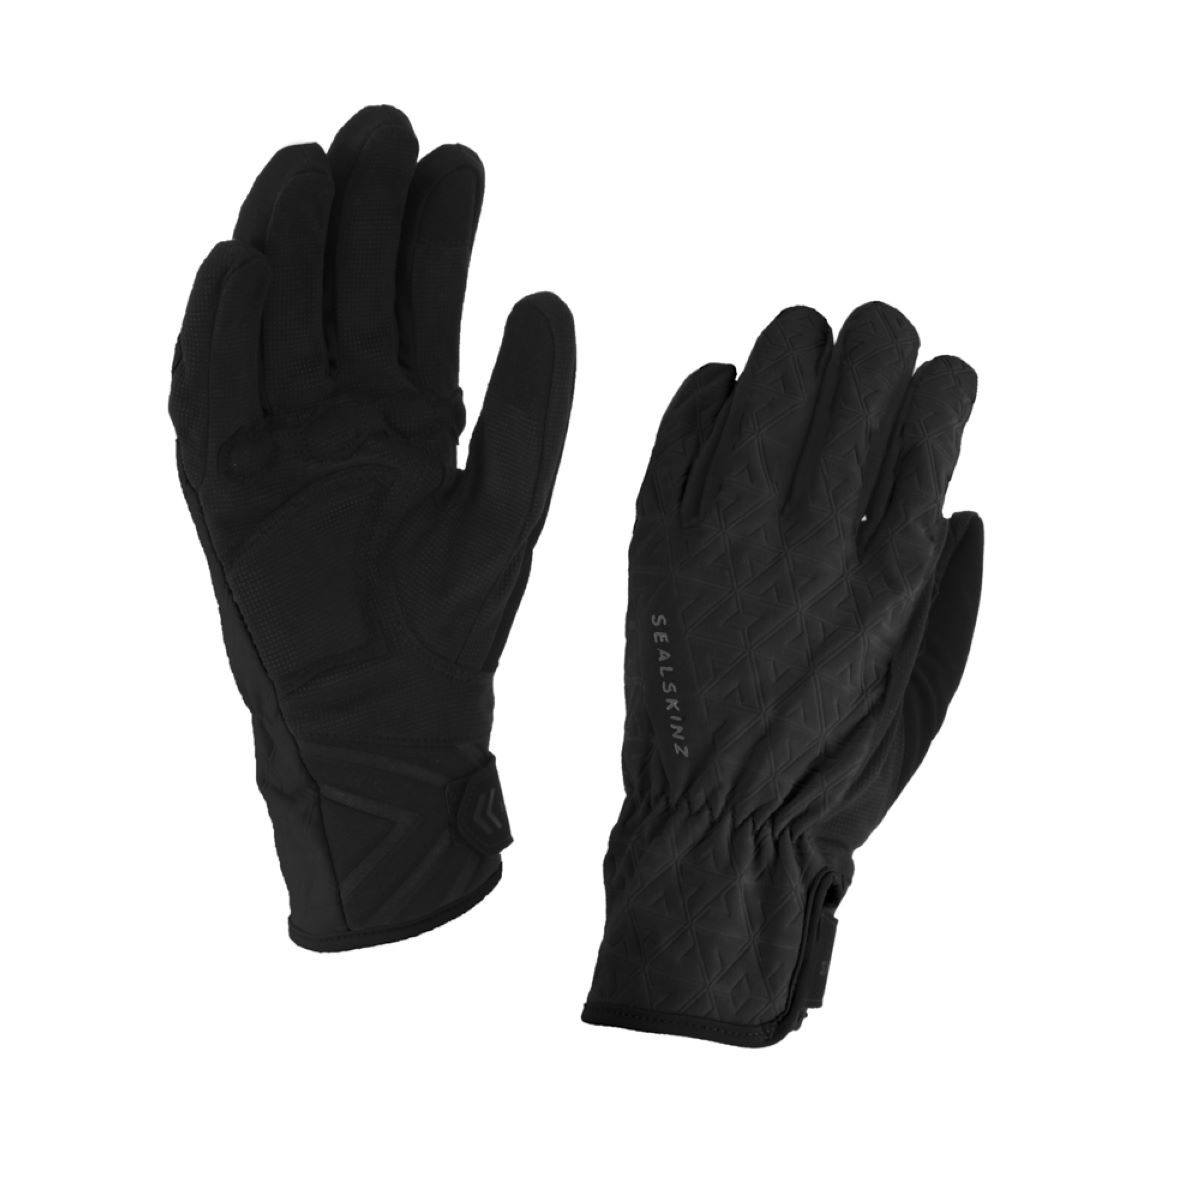 Gants cyclistes Femme SealSkinz All Weather - L Noir/Charbon Gants